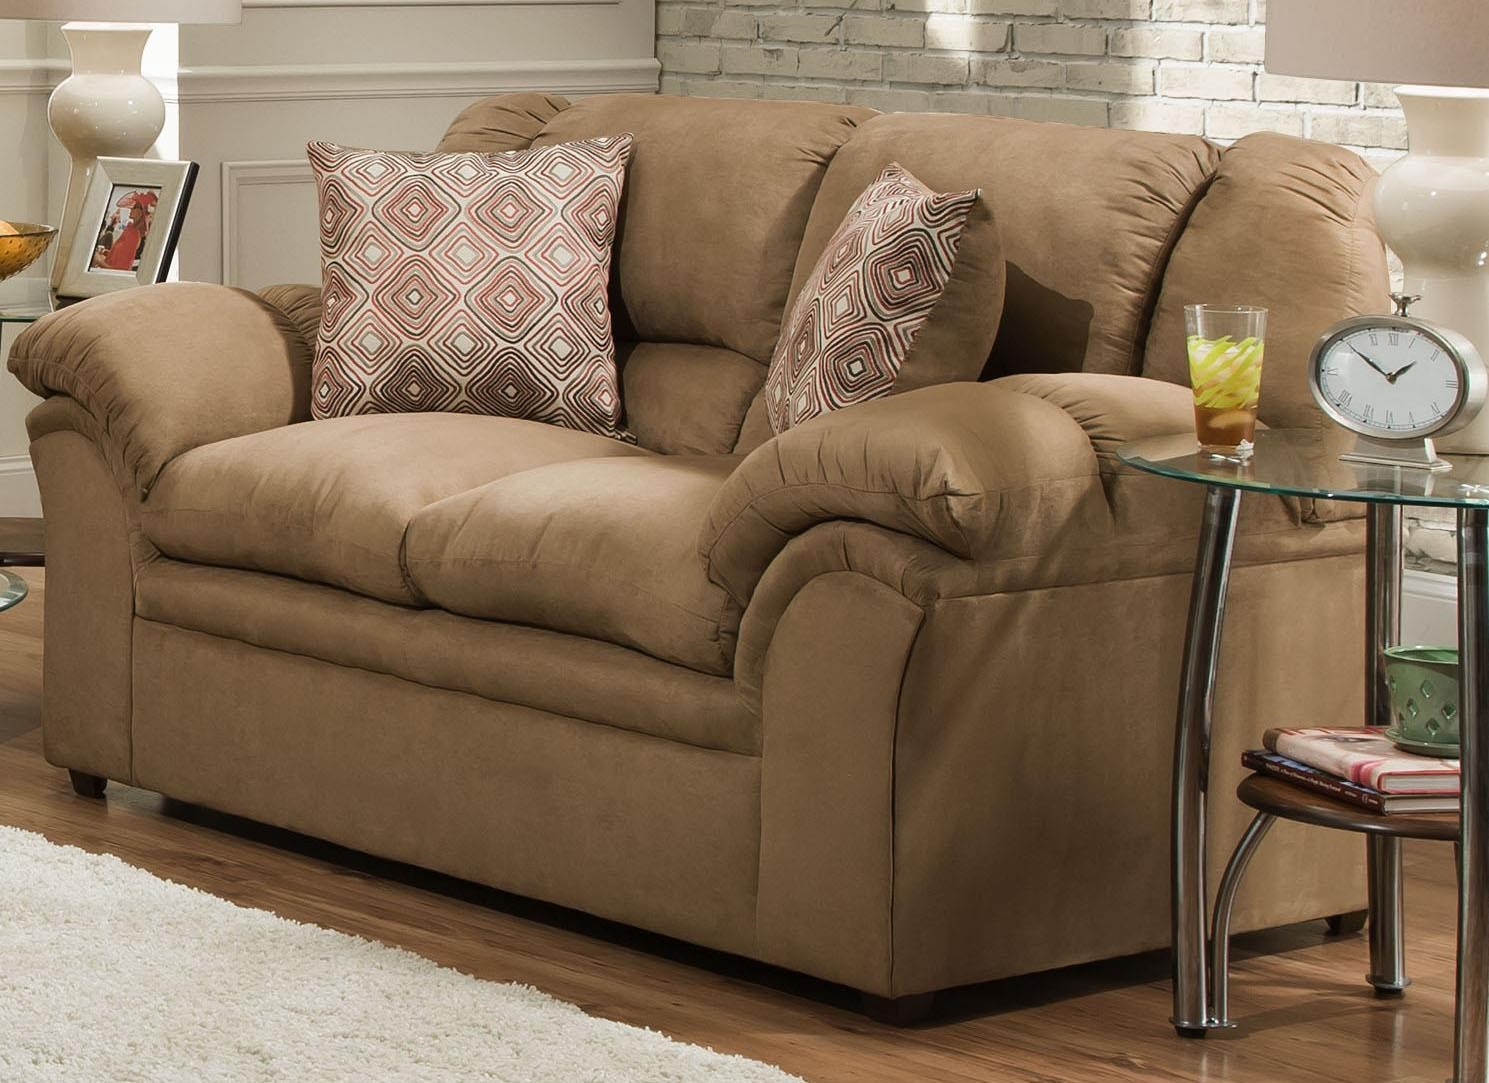 United Furniture Industries 1720 Love Seat